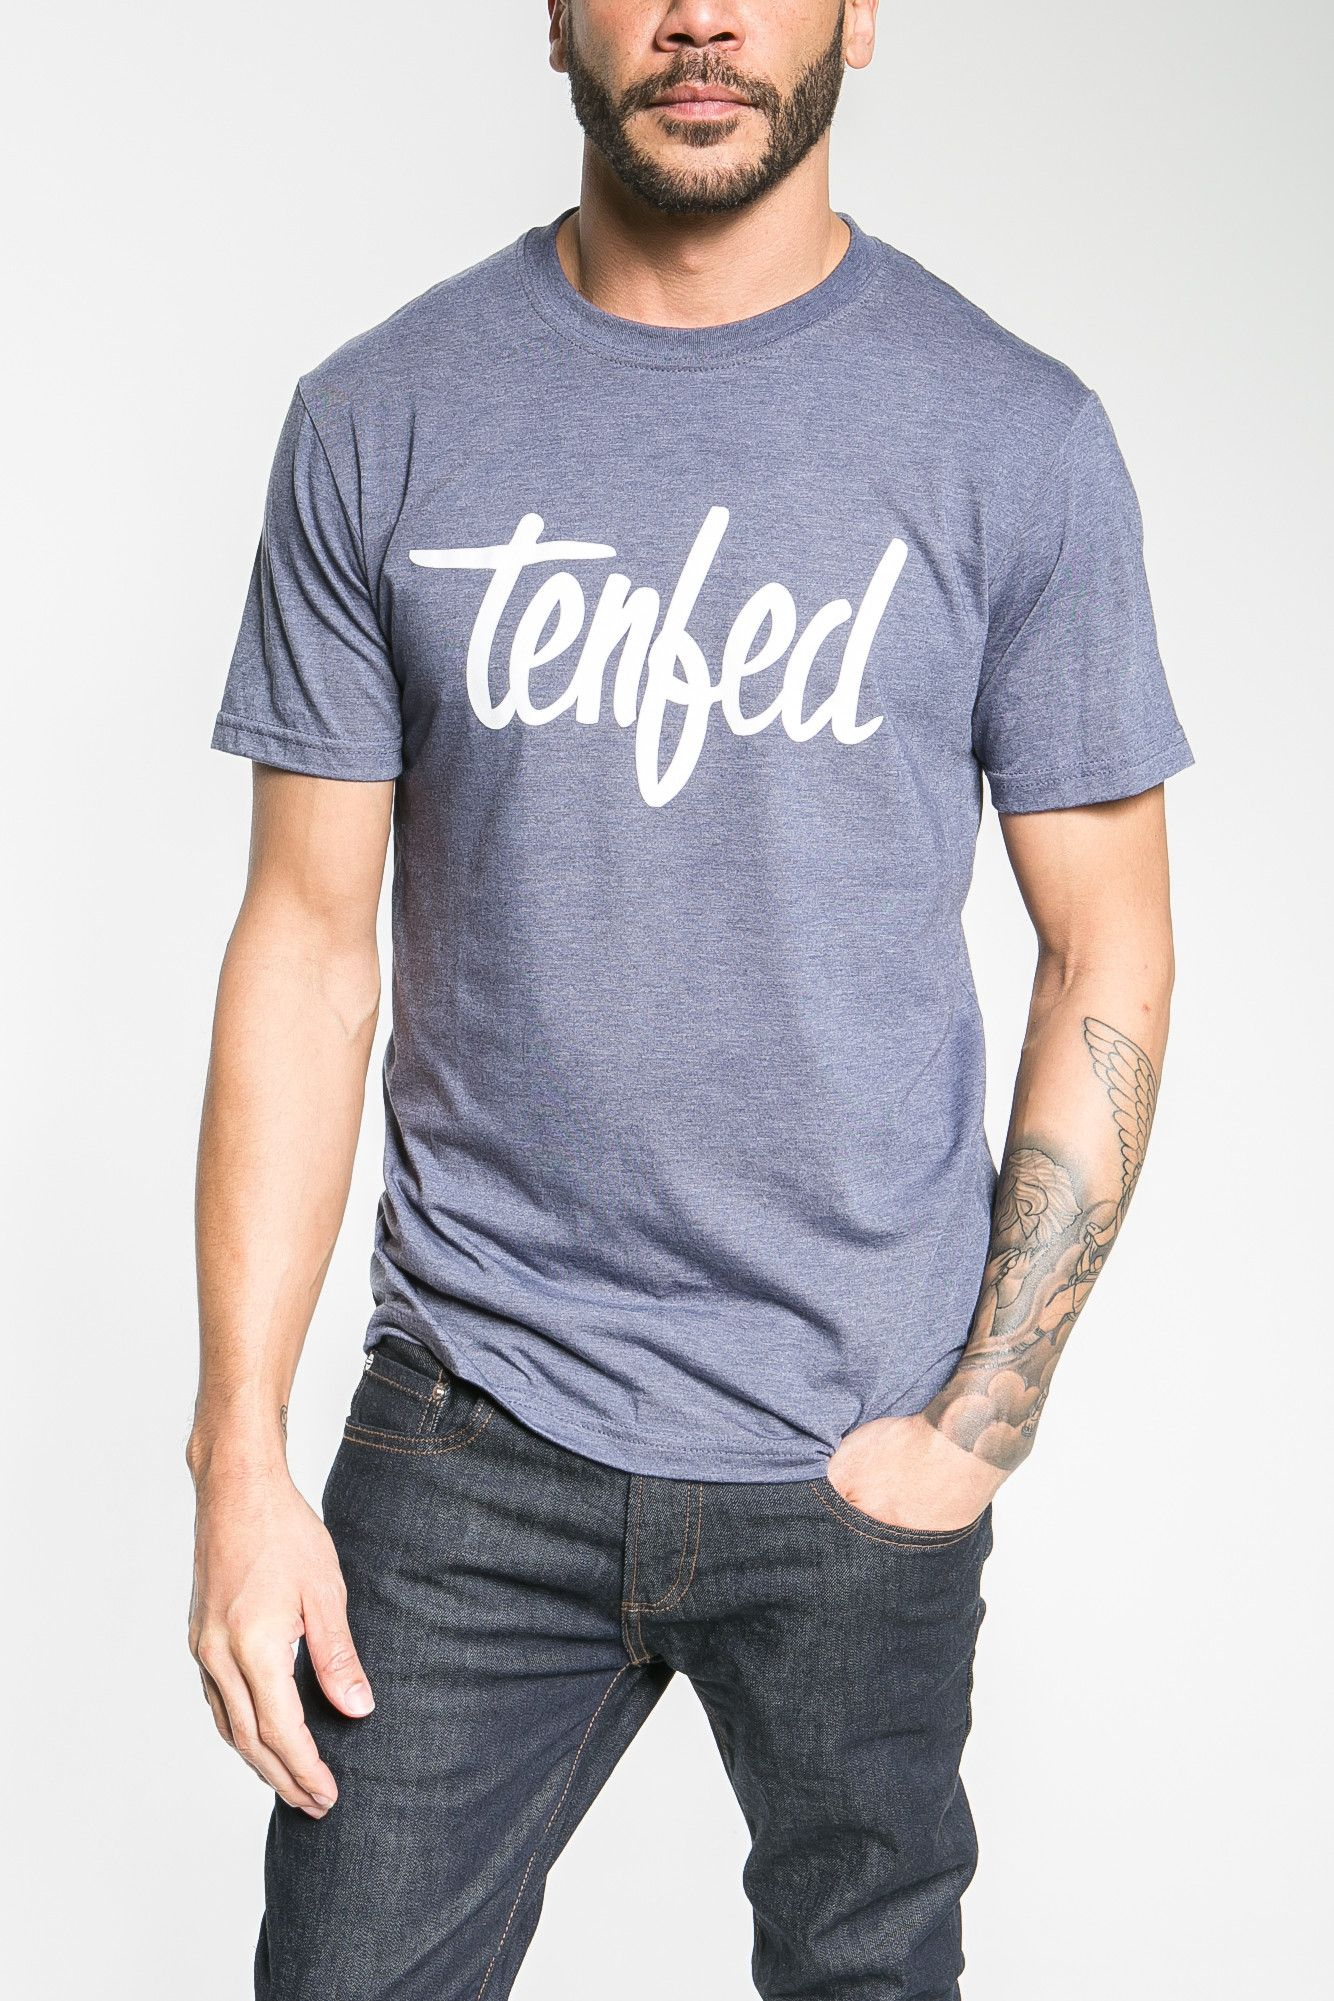 Look handsome in our wide selection of bold #Tenfed t-shirts – made for manly men http://goo.gl/00YuTa